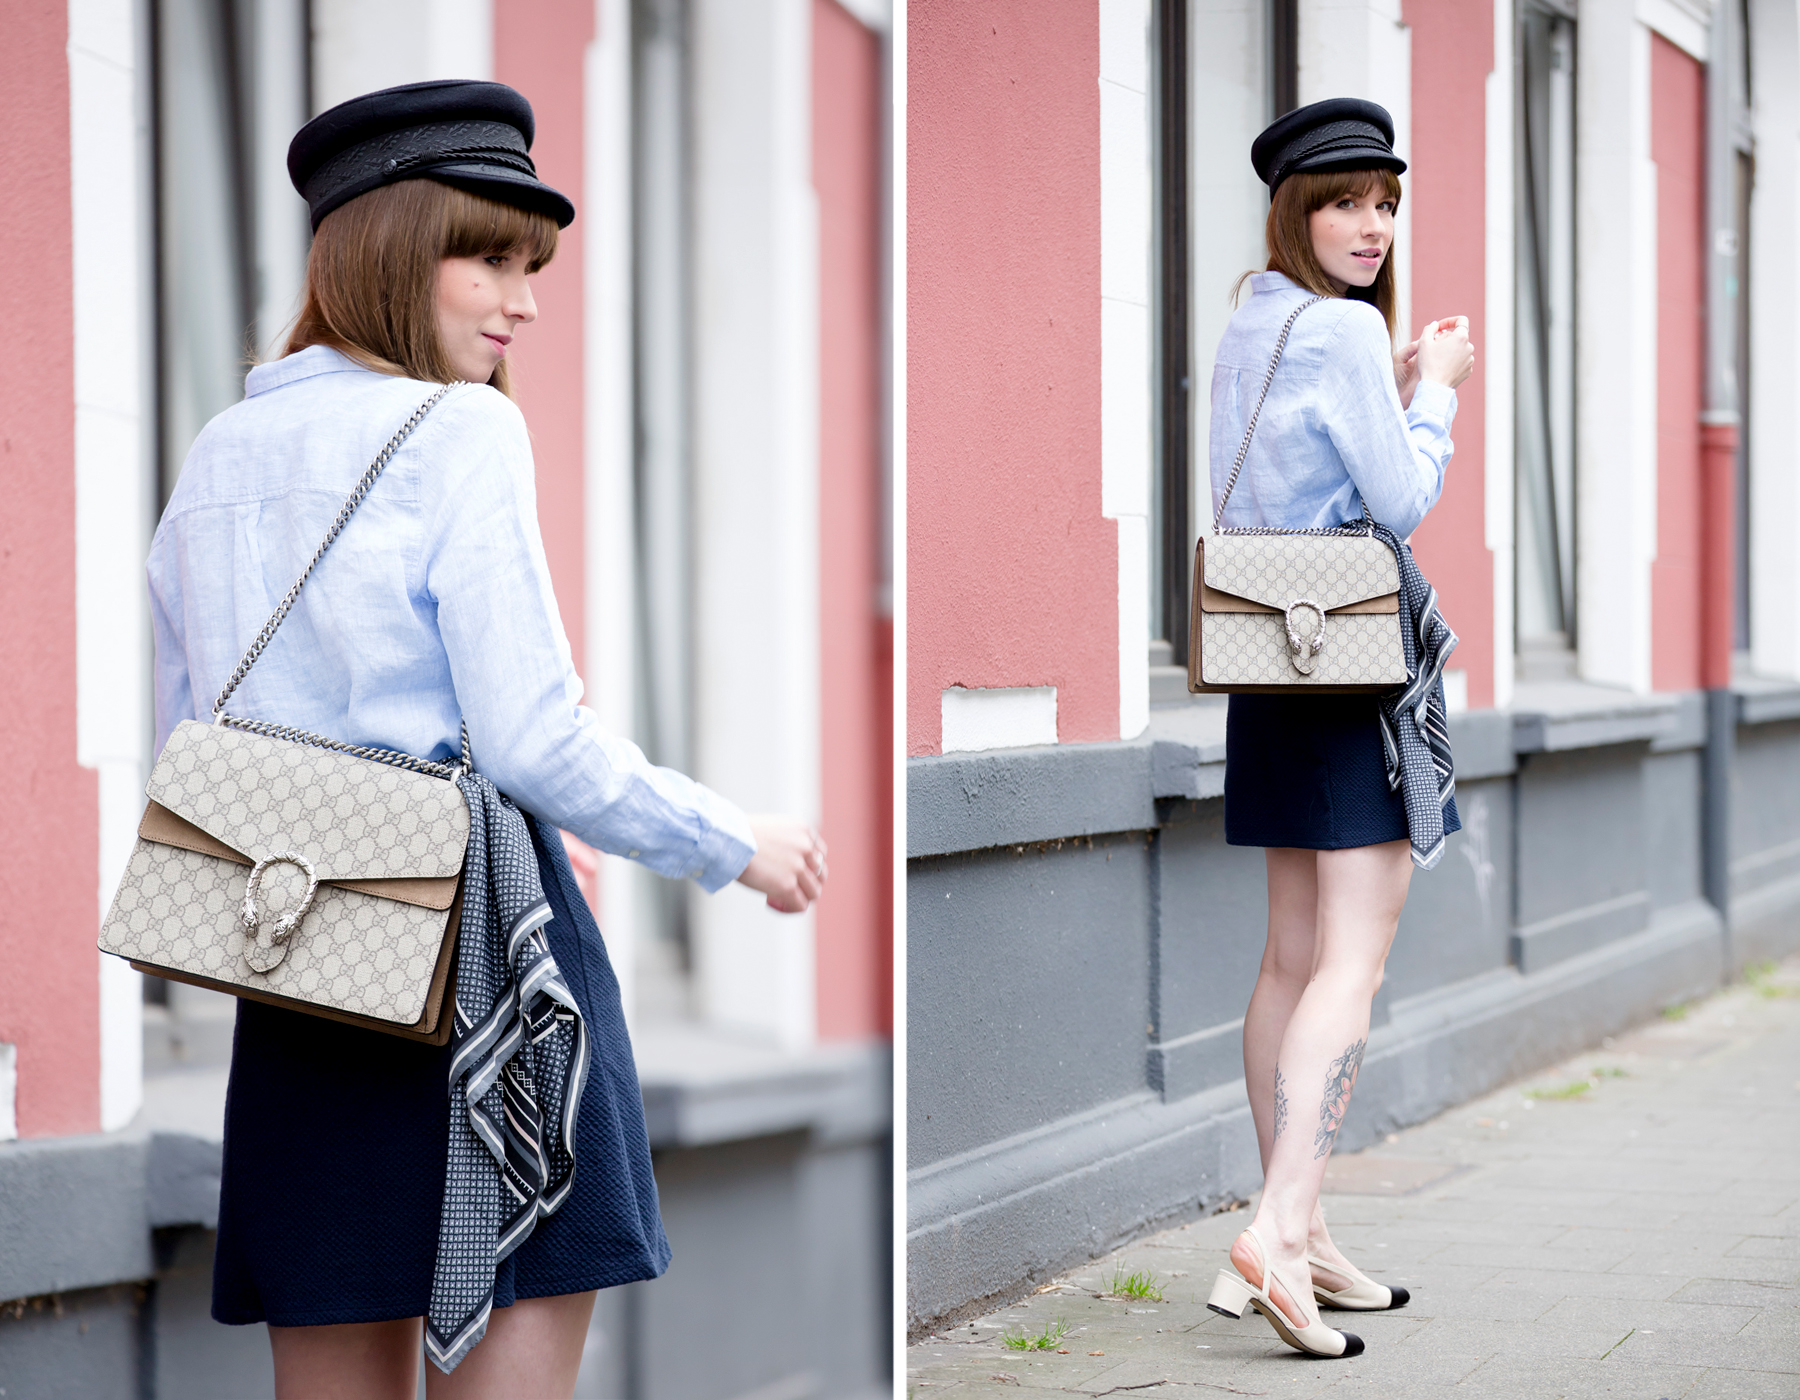 sailor blue french parisienne outfit gucci dionysus chanel luxury fashion blogger modeblogger deutschland hat cute bangs brunette ootd outfit look lookbook cats & dogs ricarda schernus blog 5